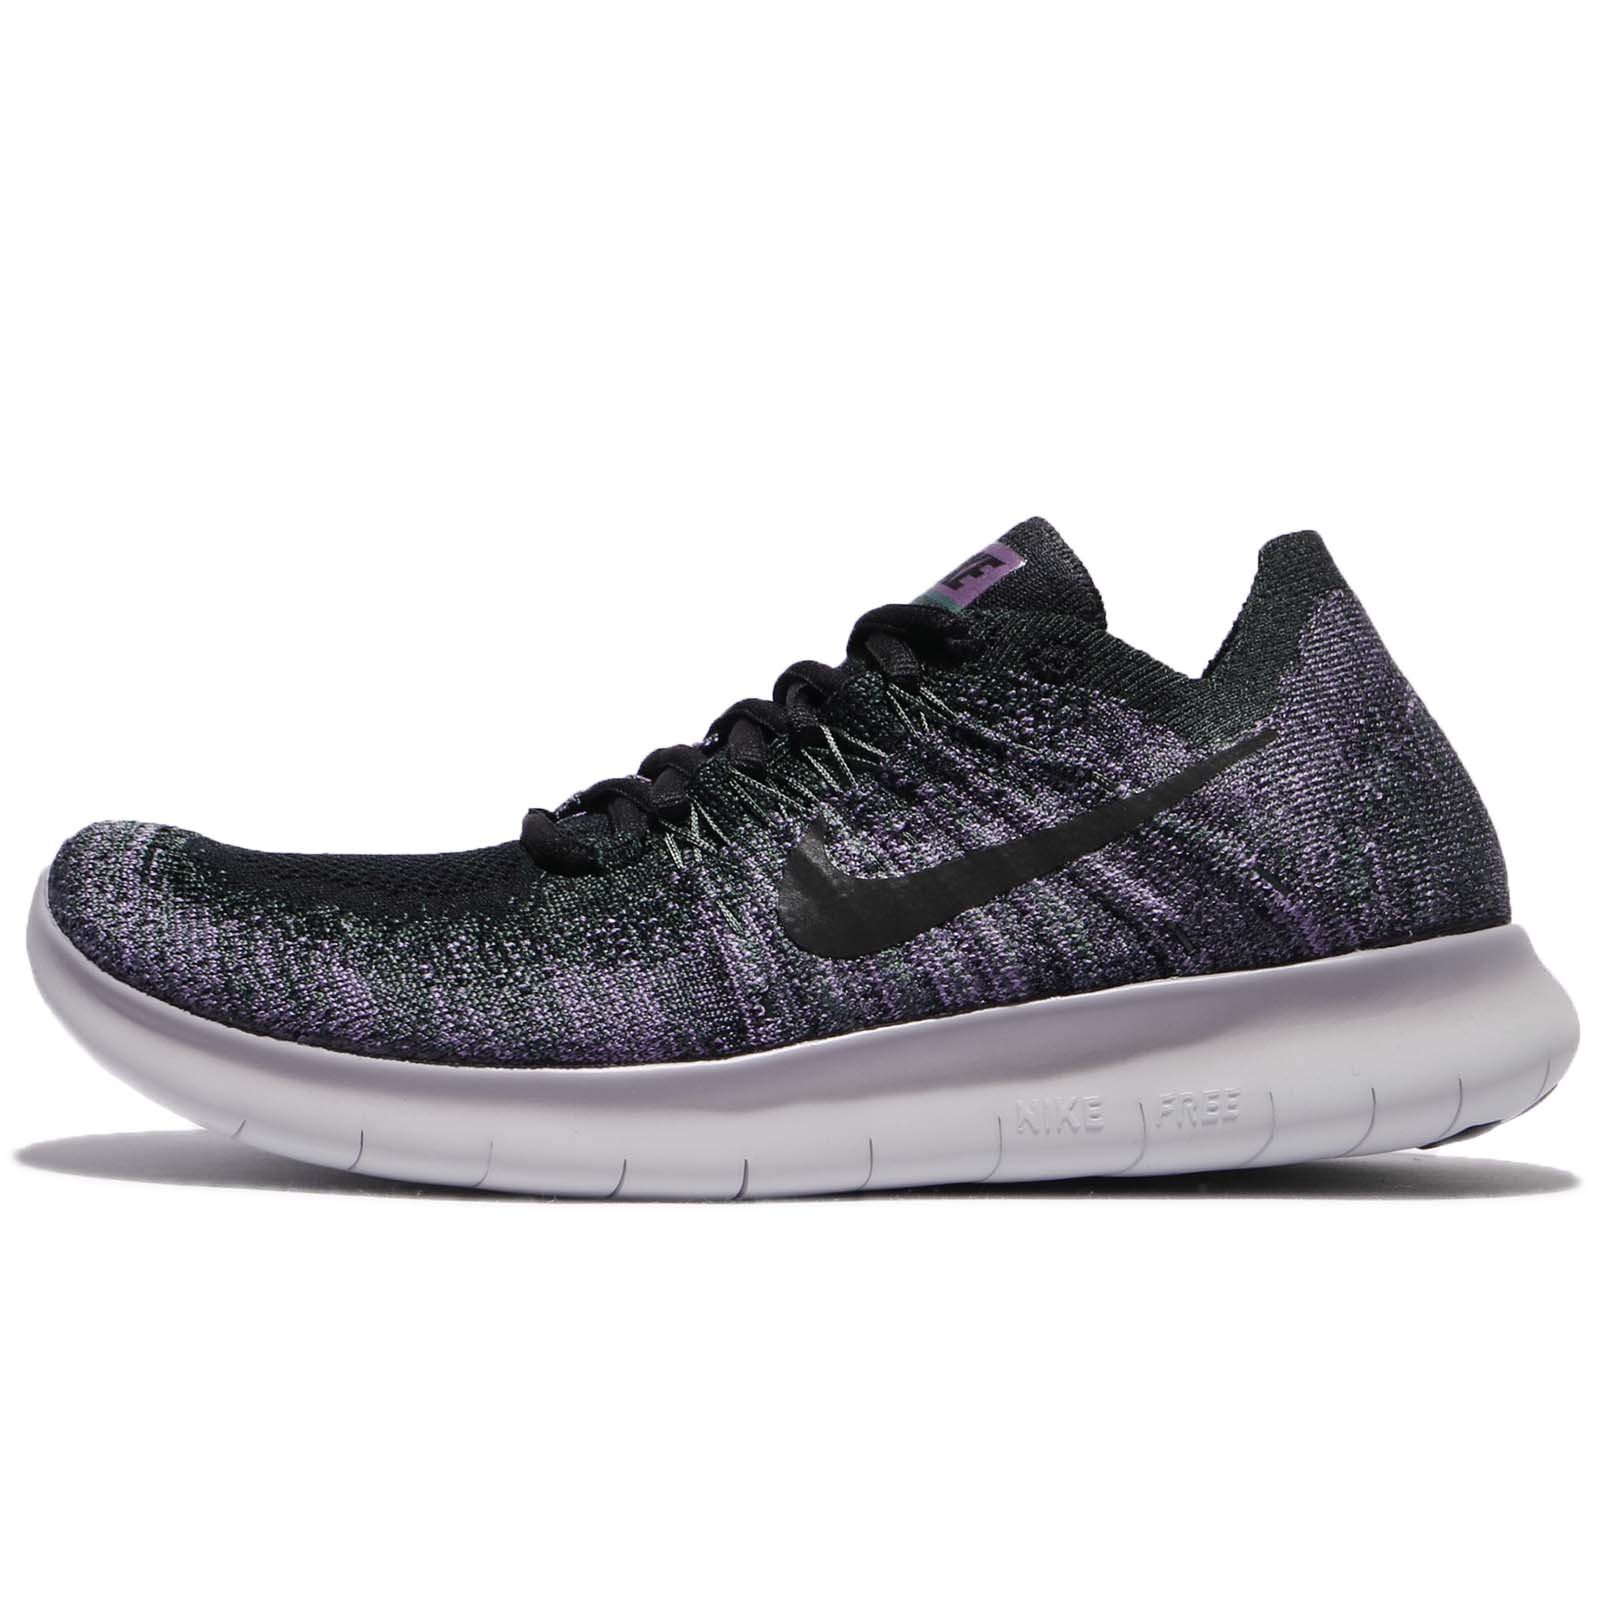 28d53f0270df Galleon - NIKE Women s Free RN Flyknit 2017 Running Shoe Vintage  Green Black-Purple Basalt 8.0